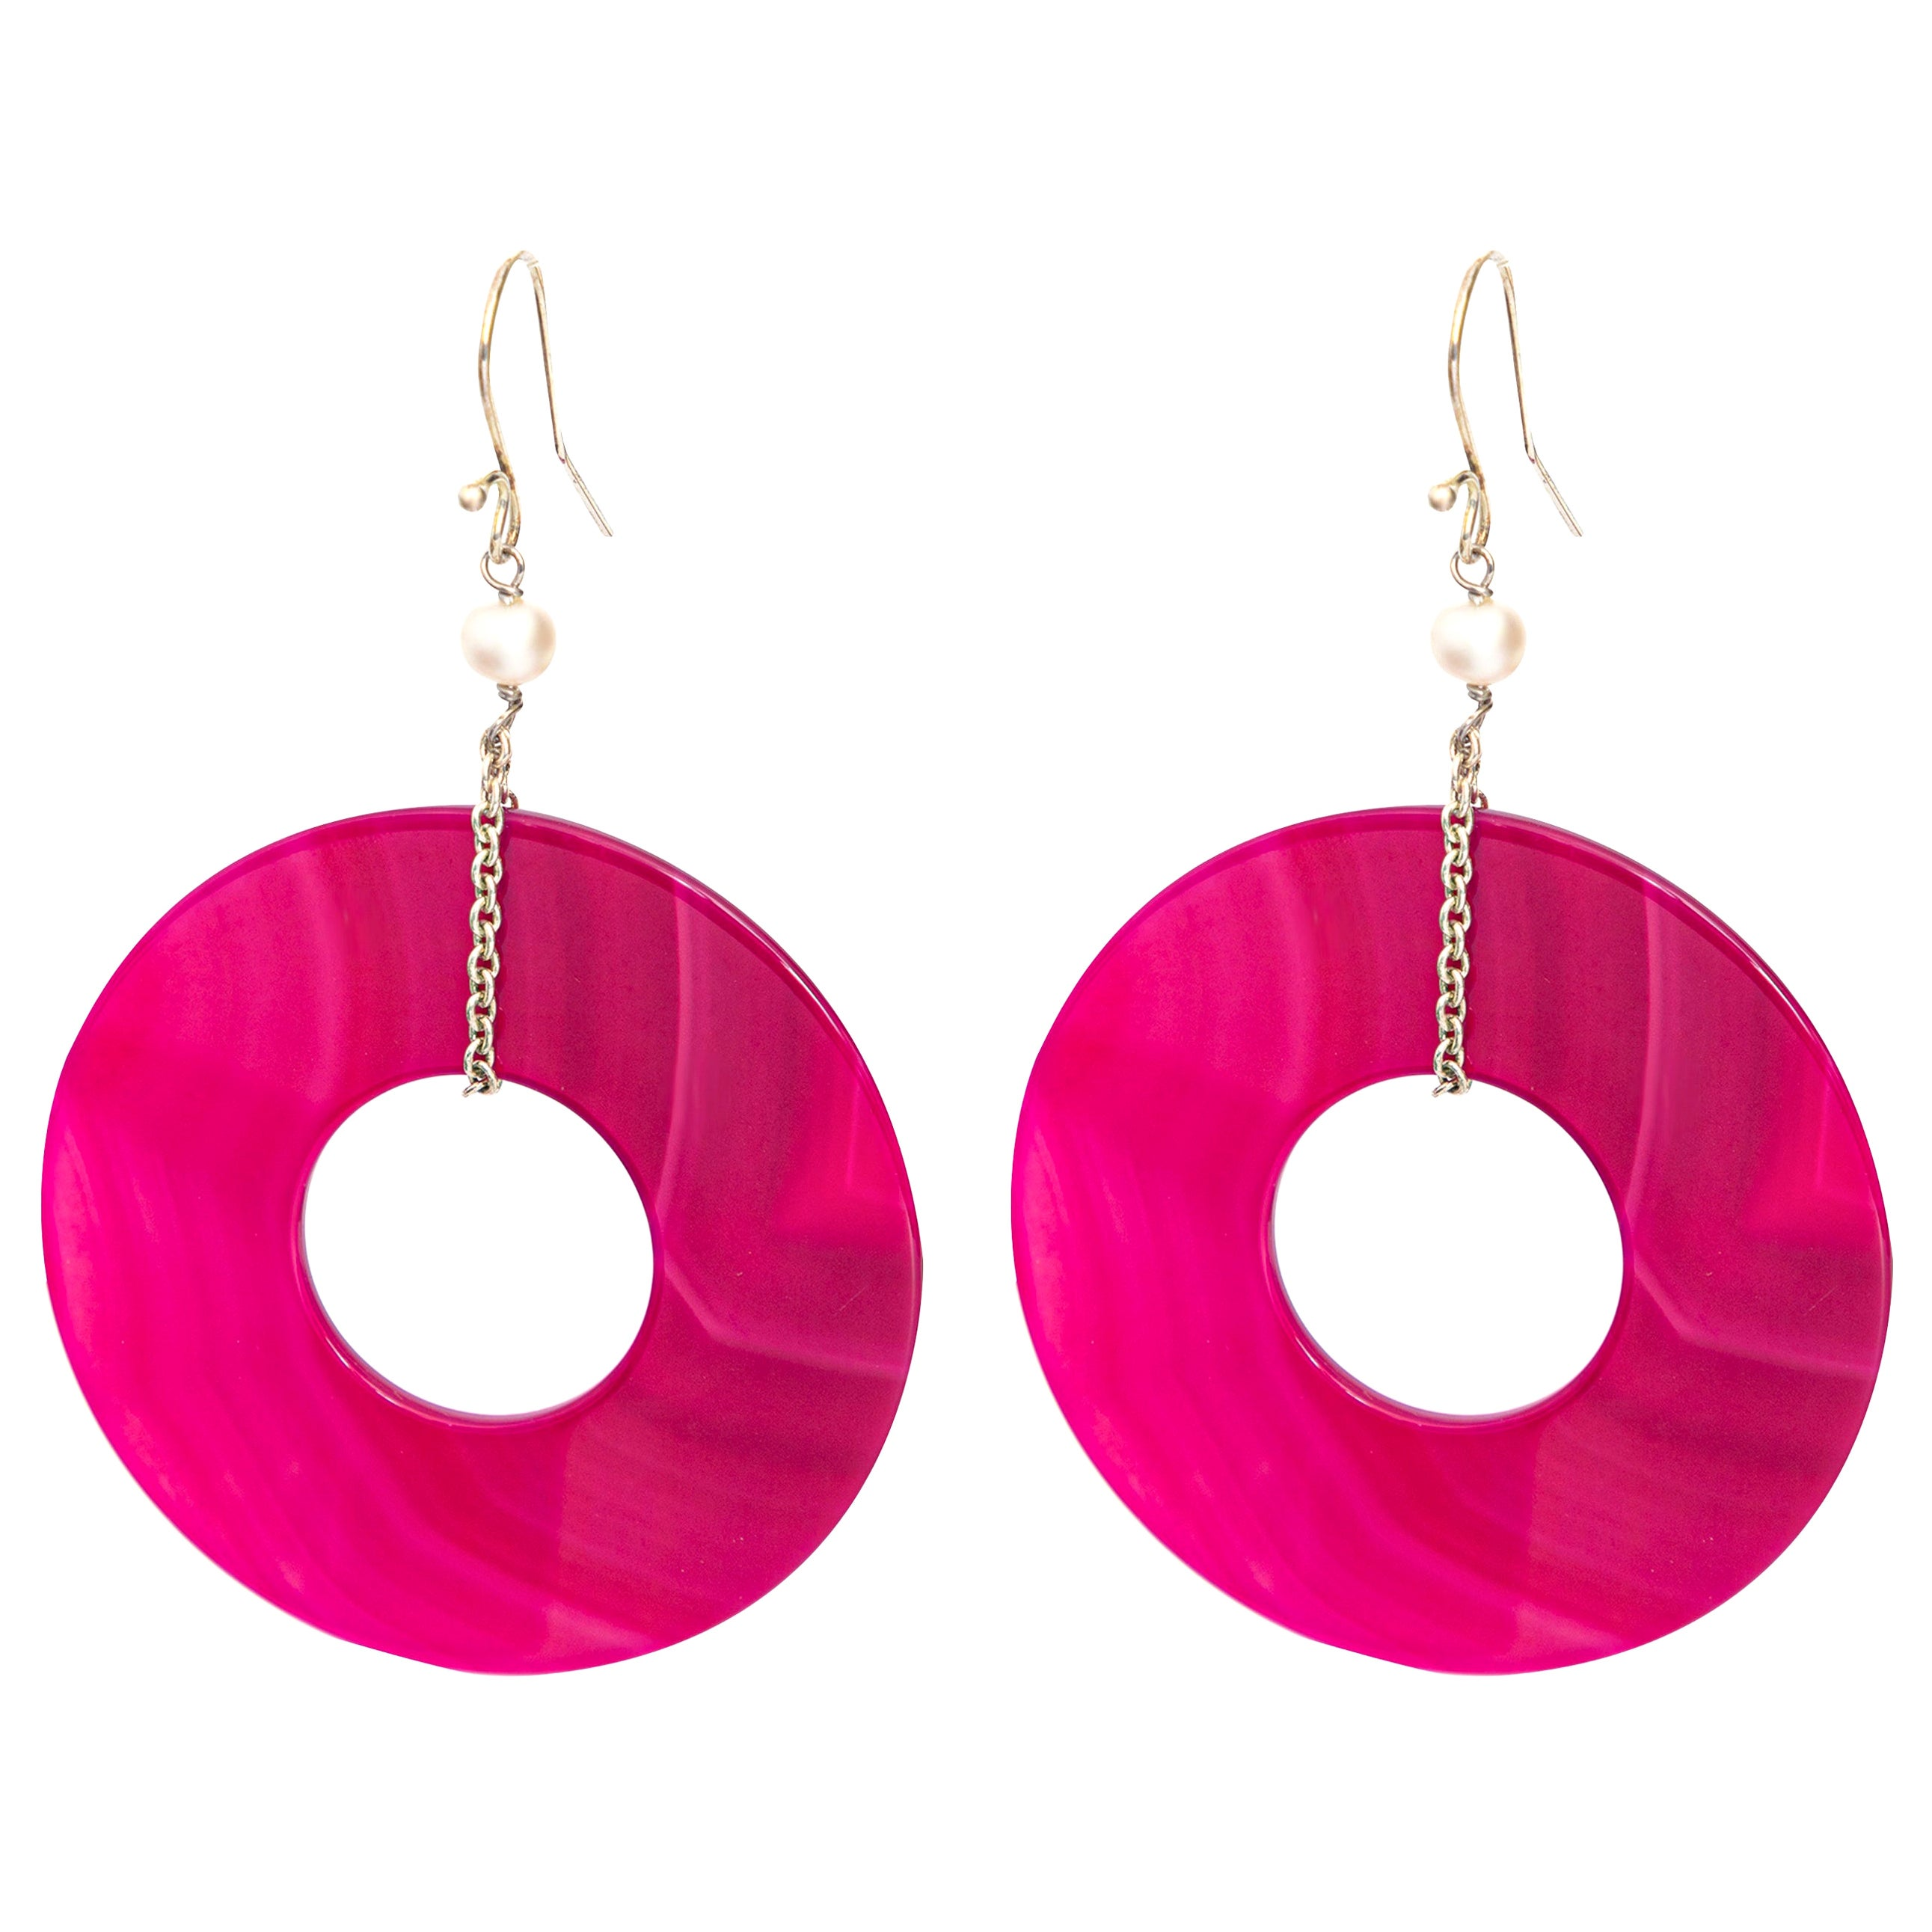 Agate Round Fuchsia Donut Shaped Pearls 925 Silver Dangle Chic Long Earrings